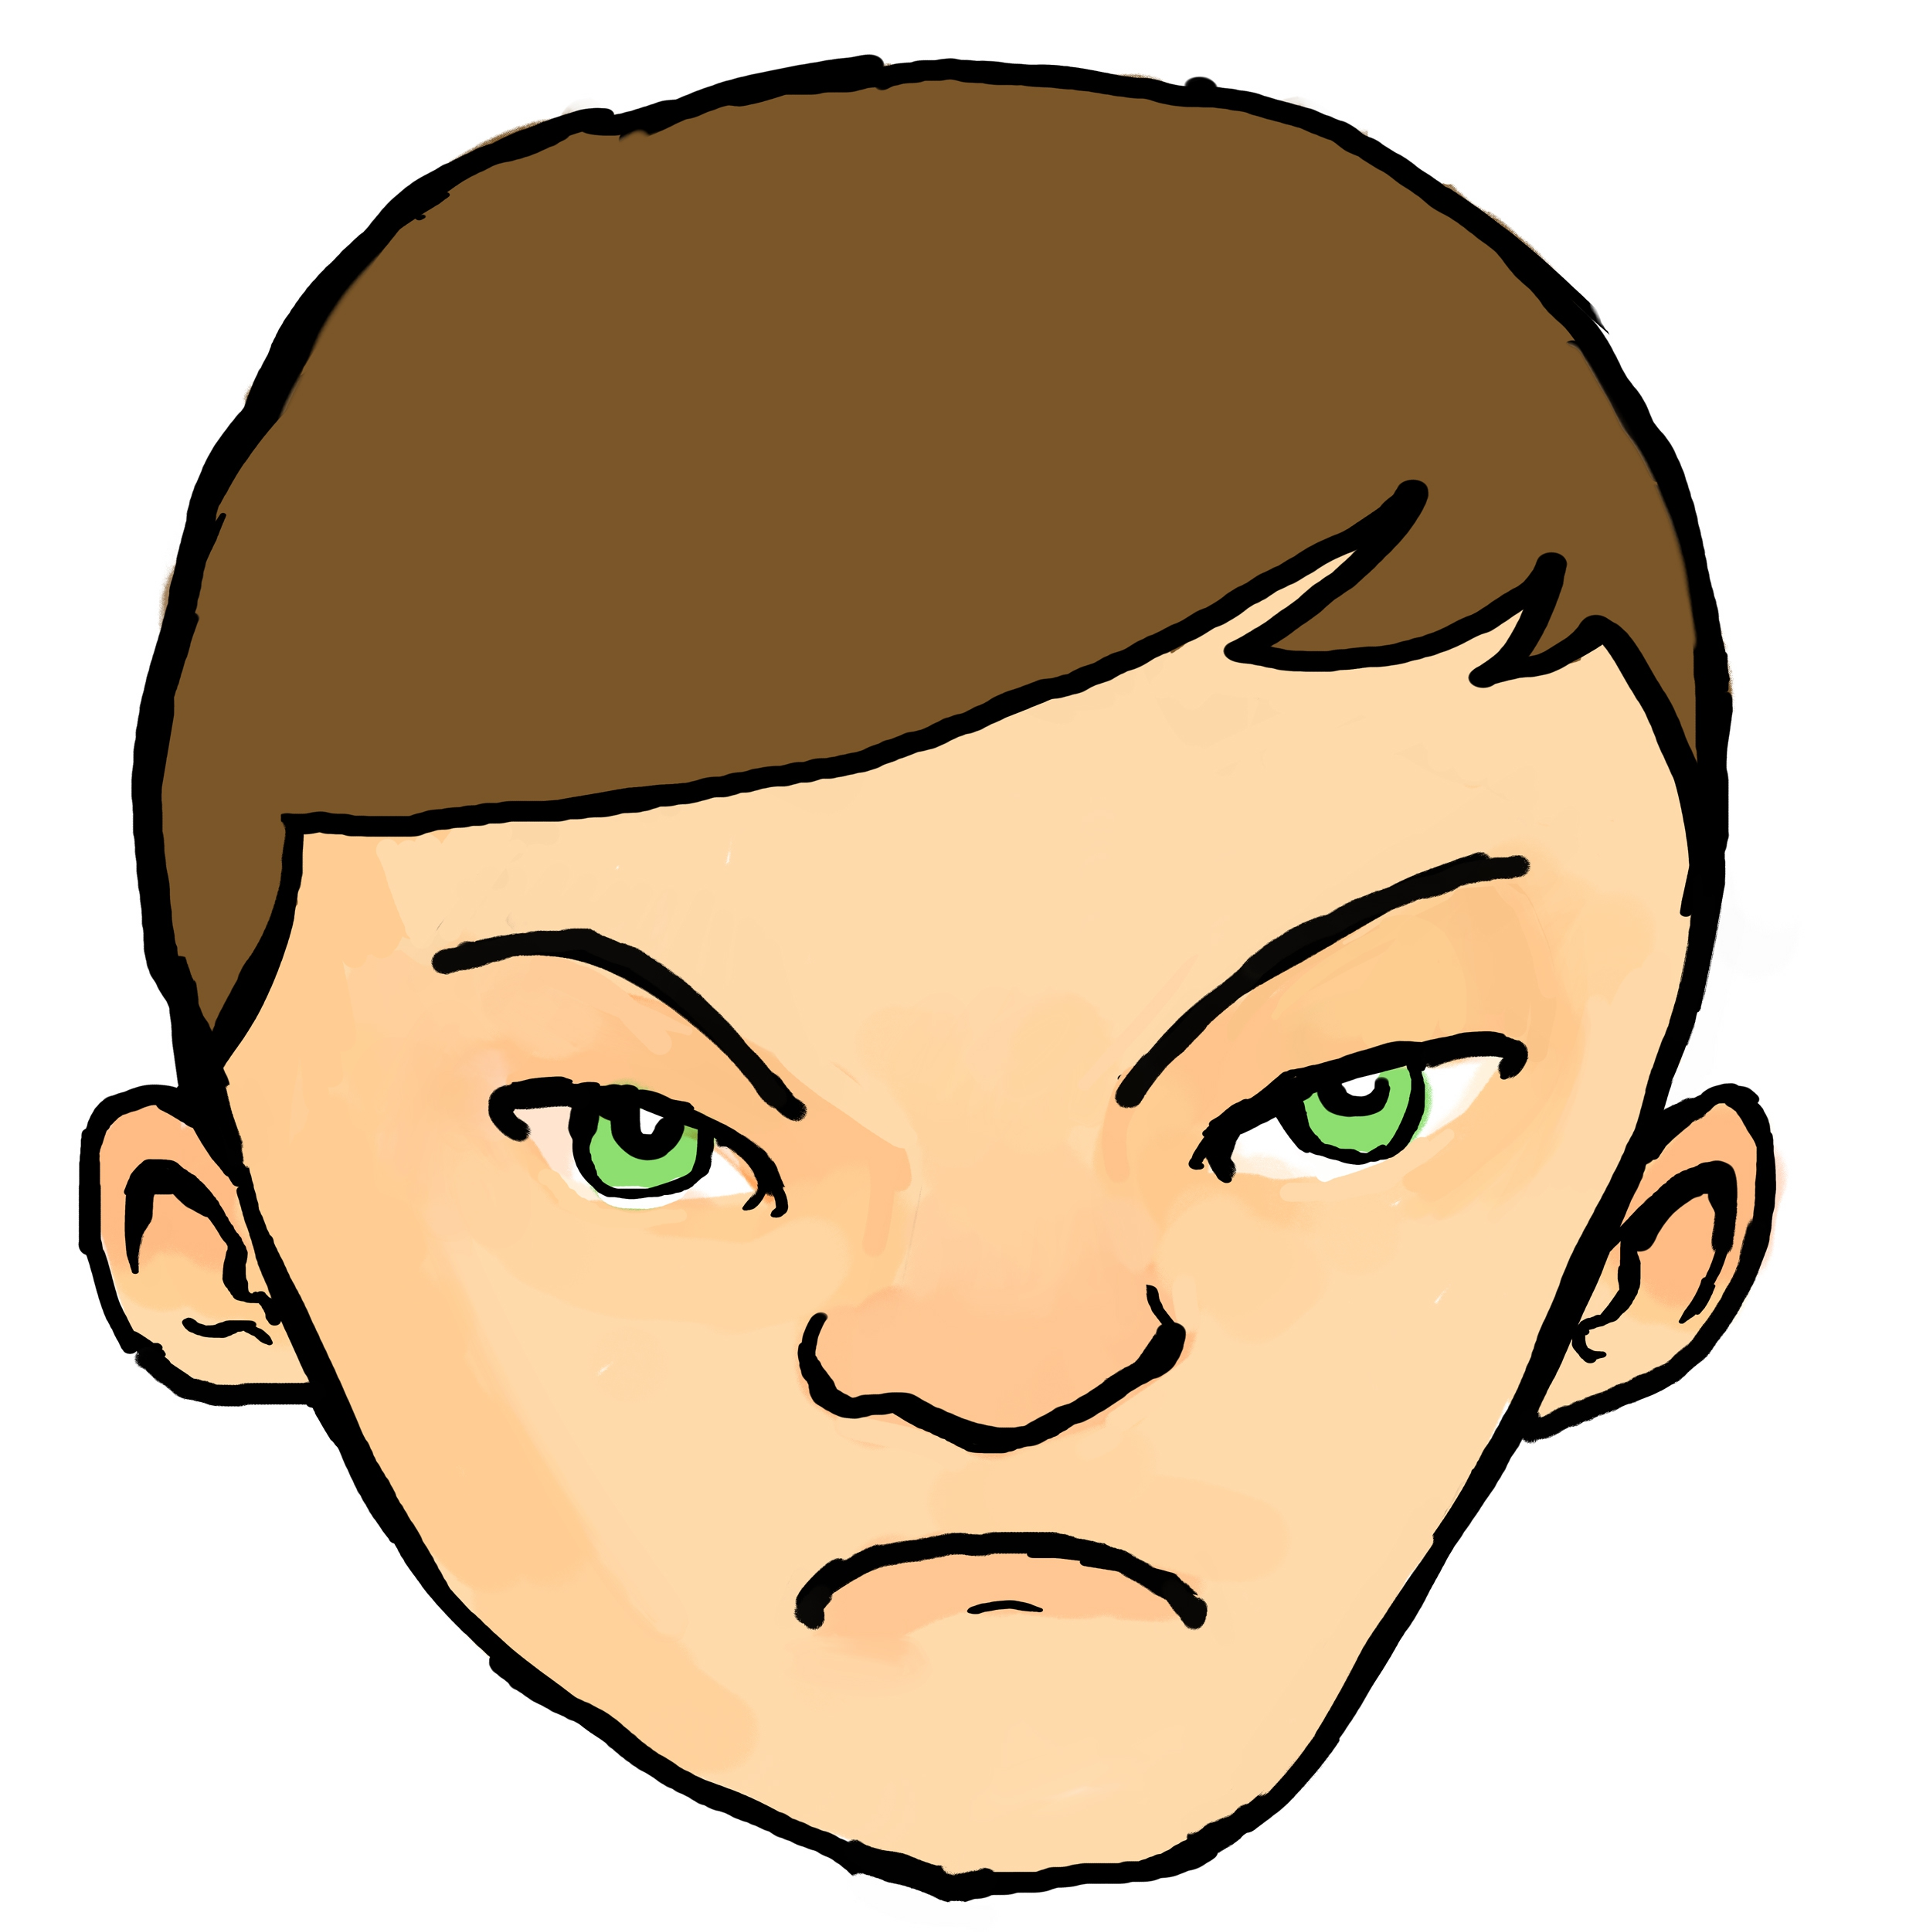 Frowning Face Clipart#1996501.